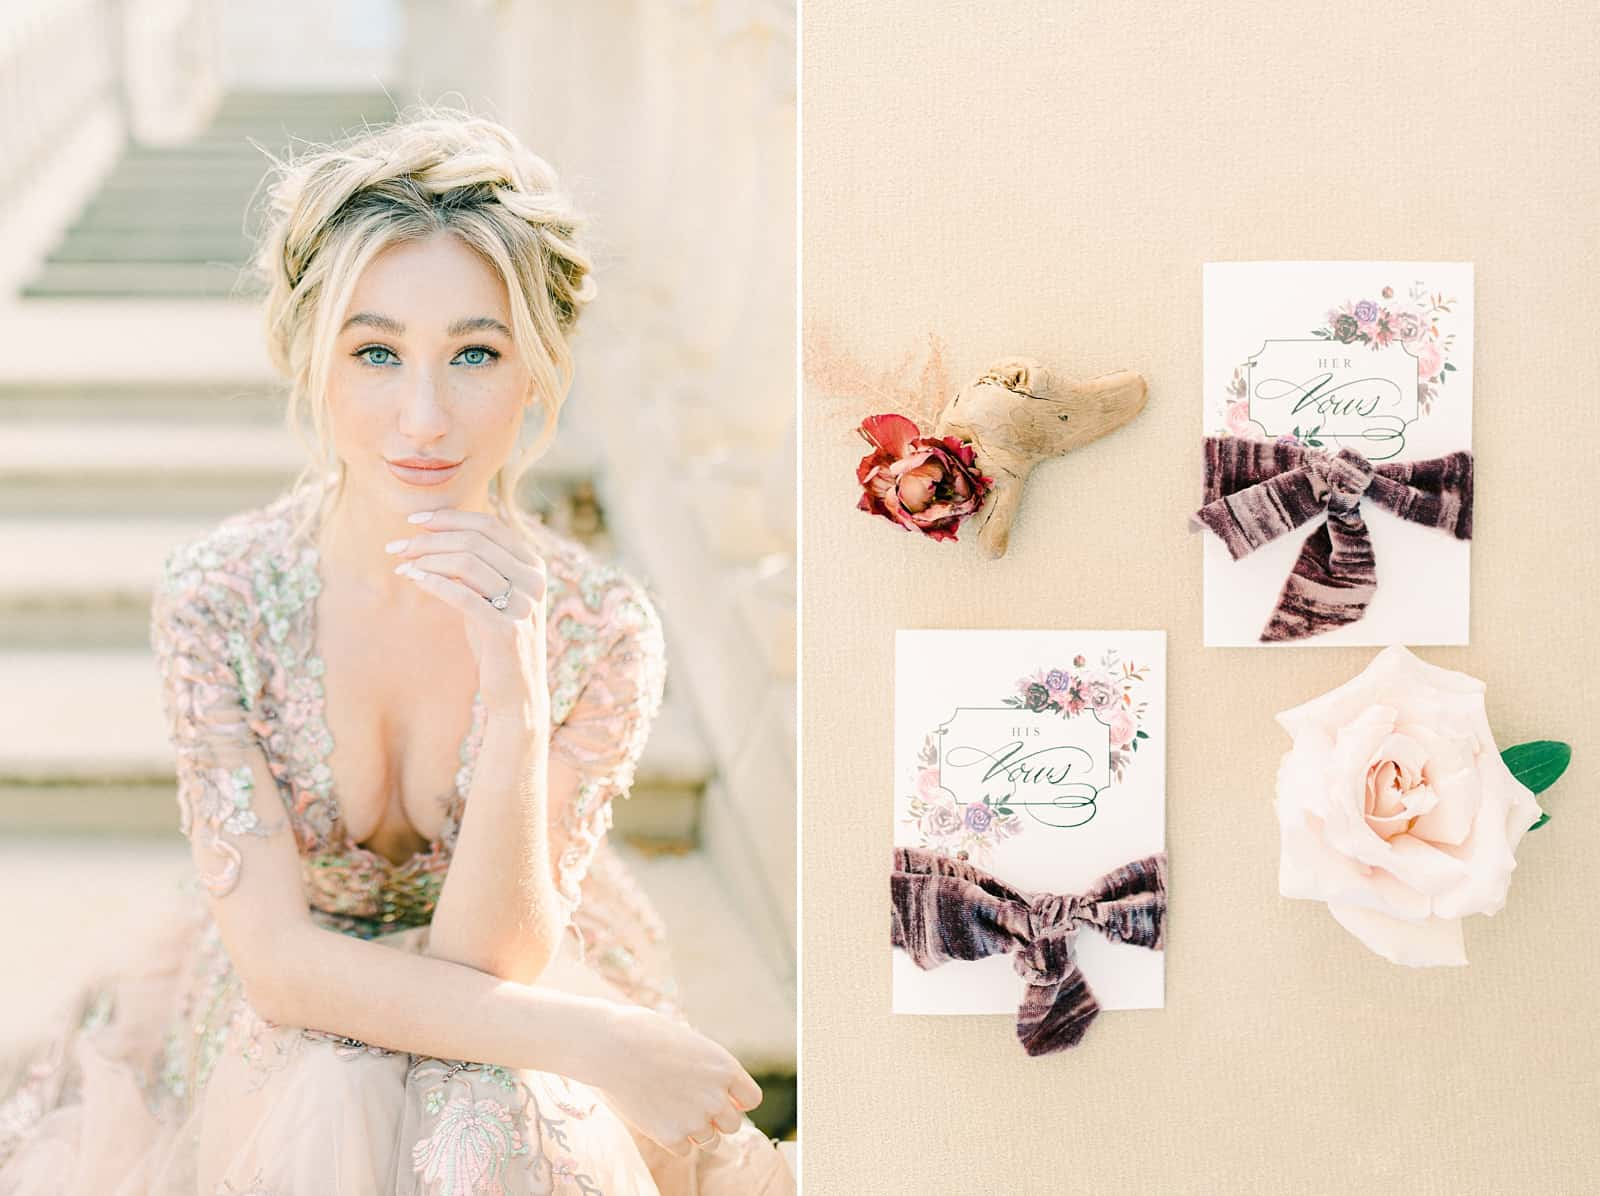 European bride with crown of braids wearing flower embellished wedding dress, wedding ceremony vow books with purple velvet ribbon